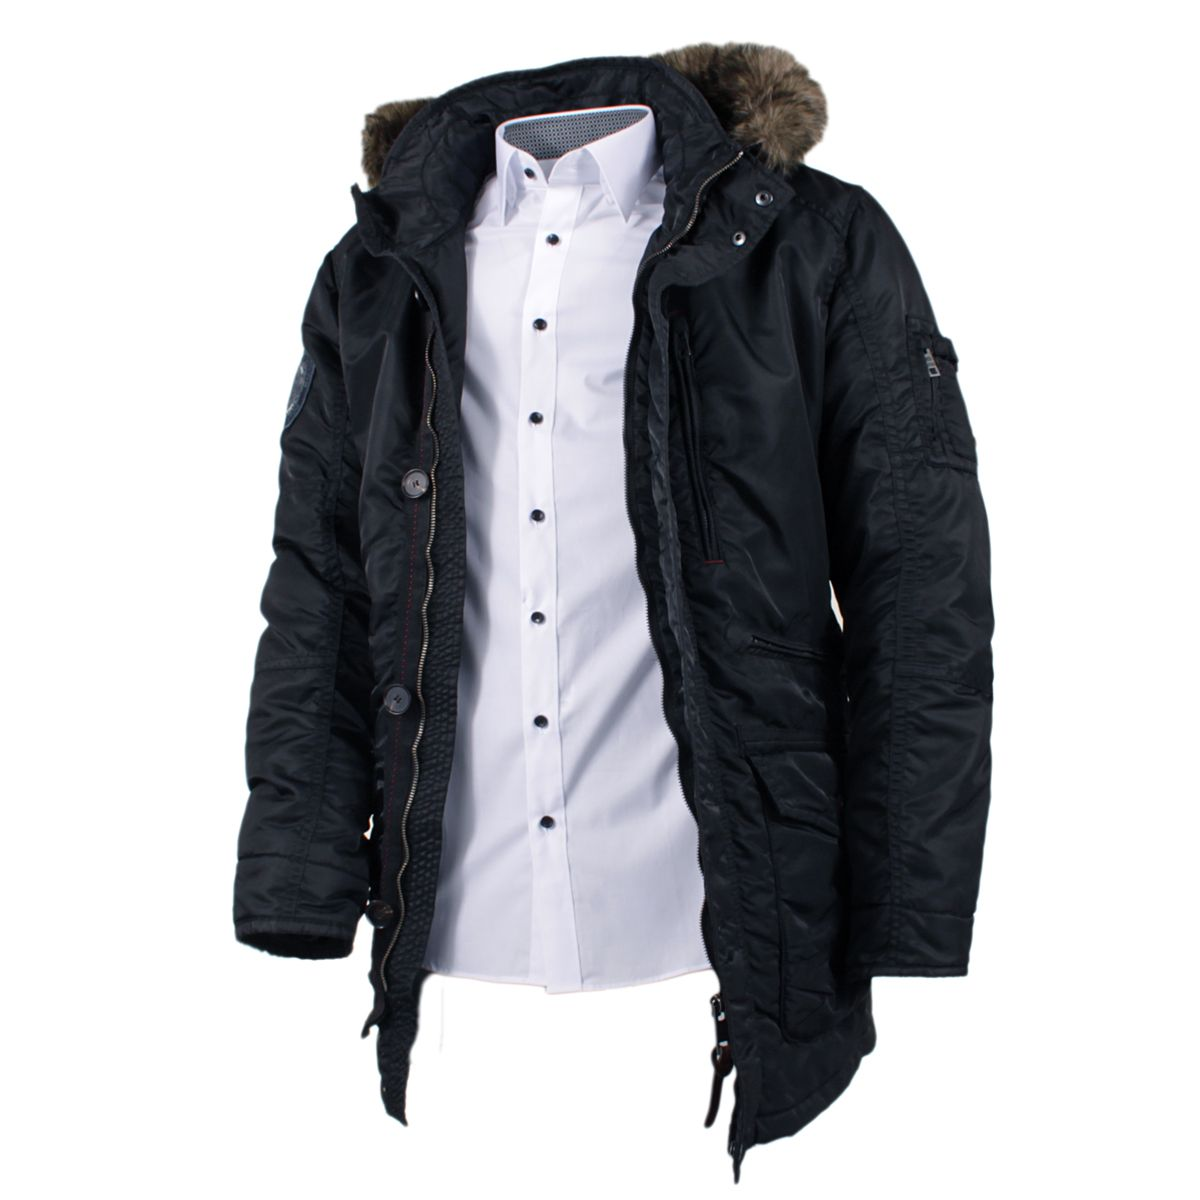 parka doudoune col fourrure noire pour homme grand du l au 3xl size factory camel active. Black Bedroom Furniture Sets. Home Design Ideas